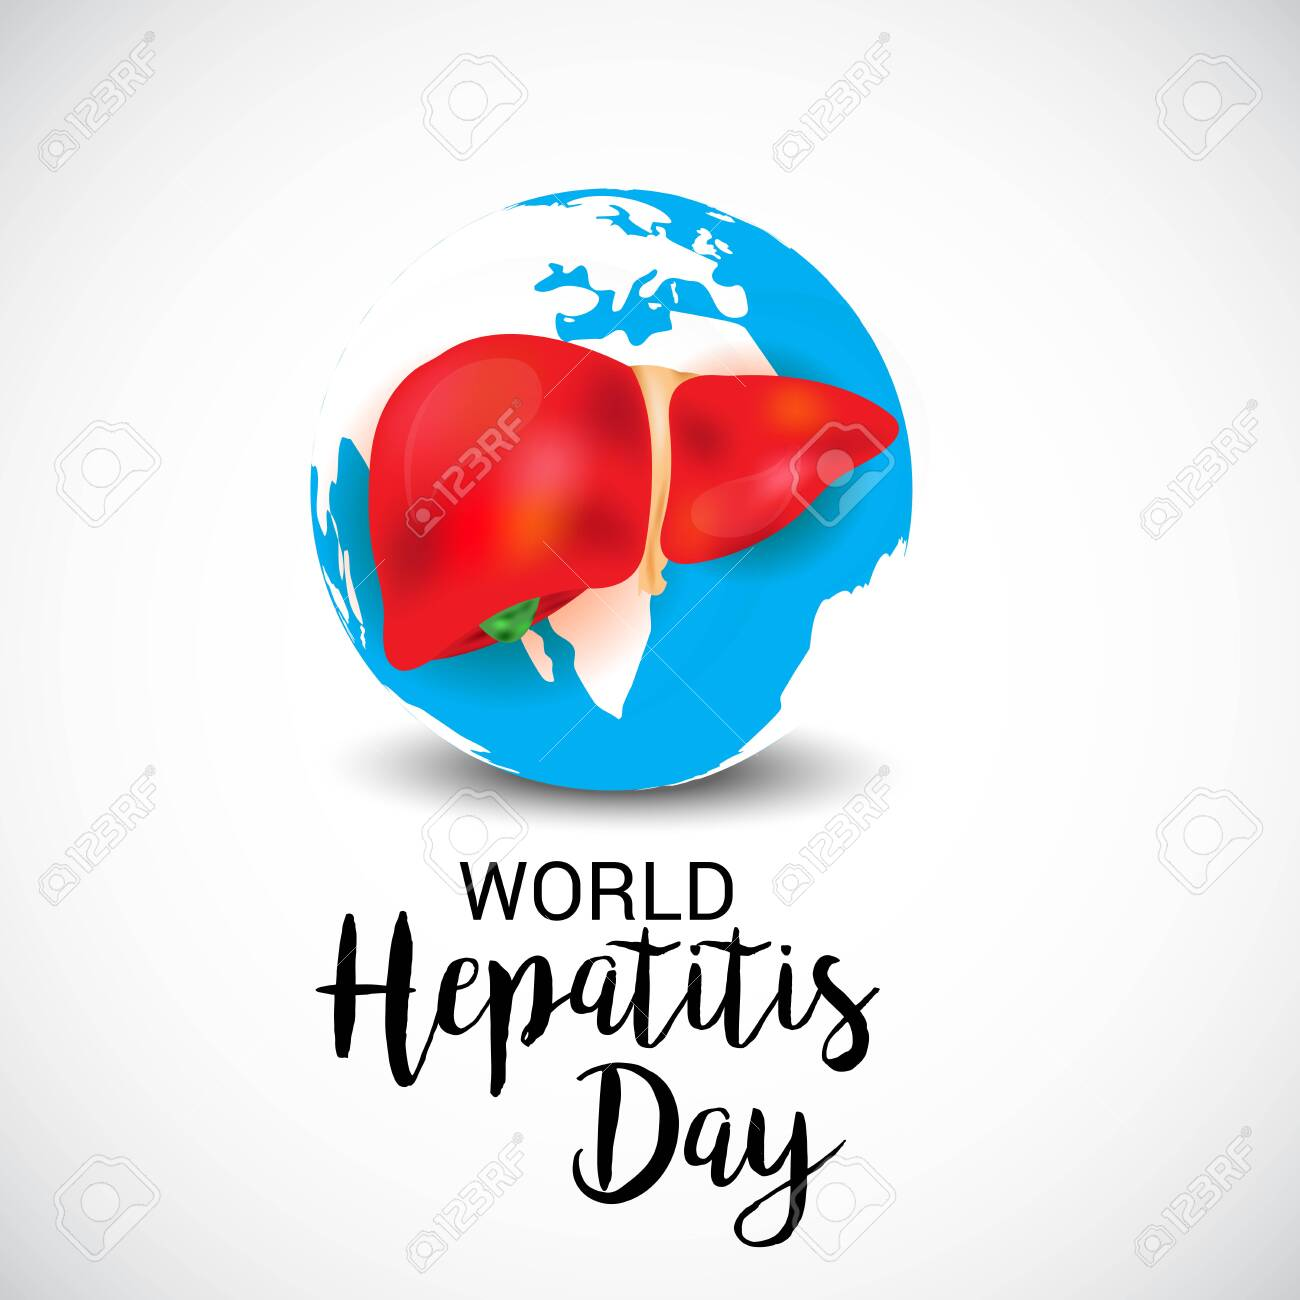 Vector illustration of a Background for World Hepatitis Day. - 134255966